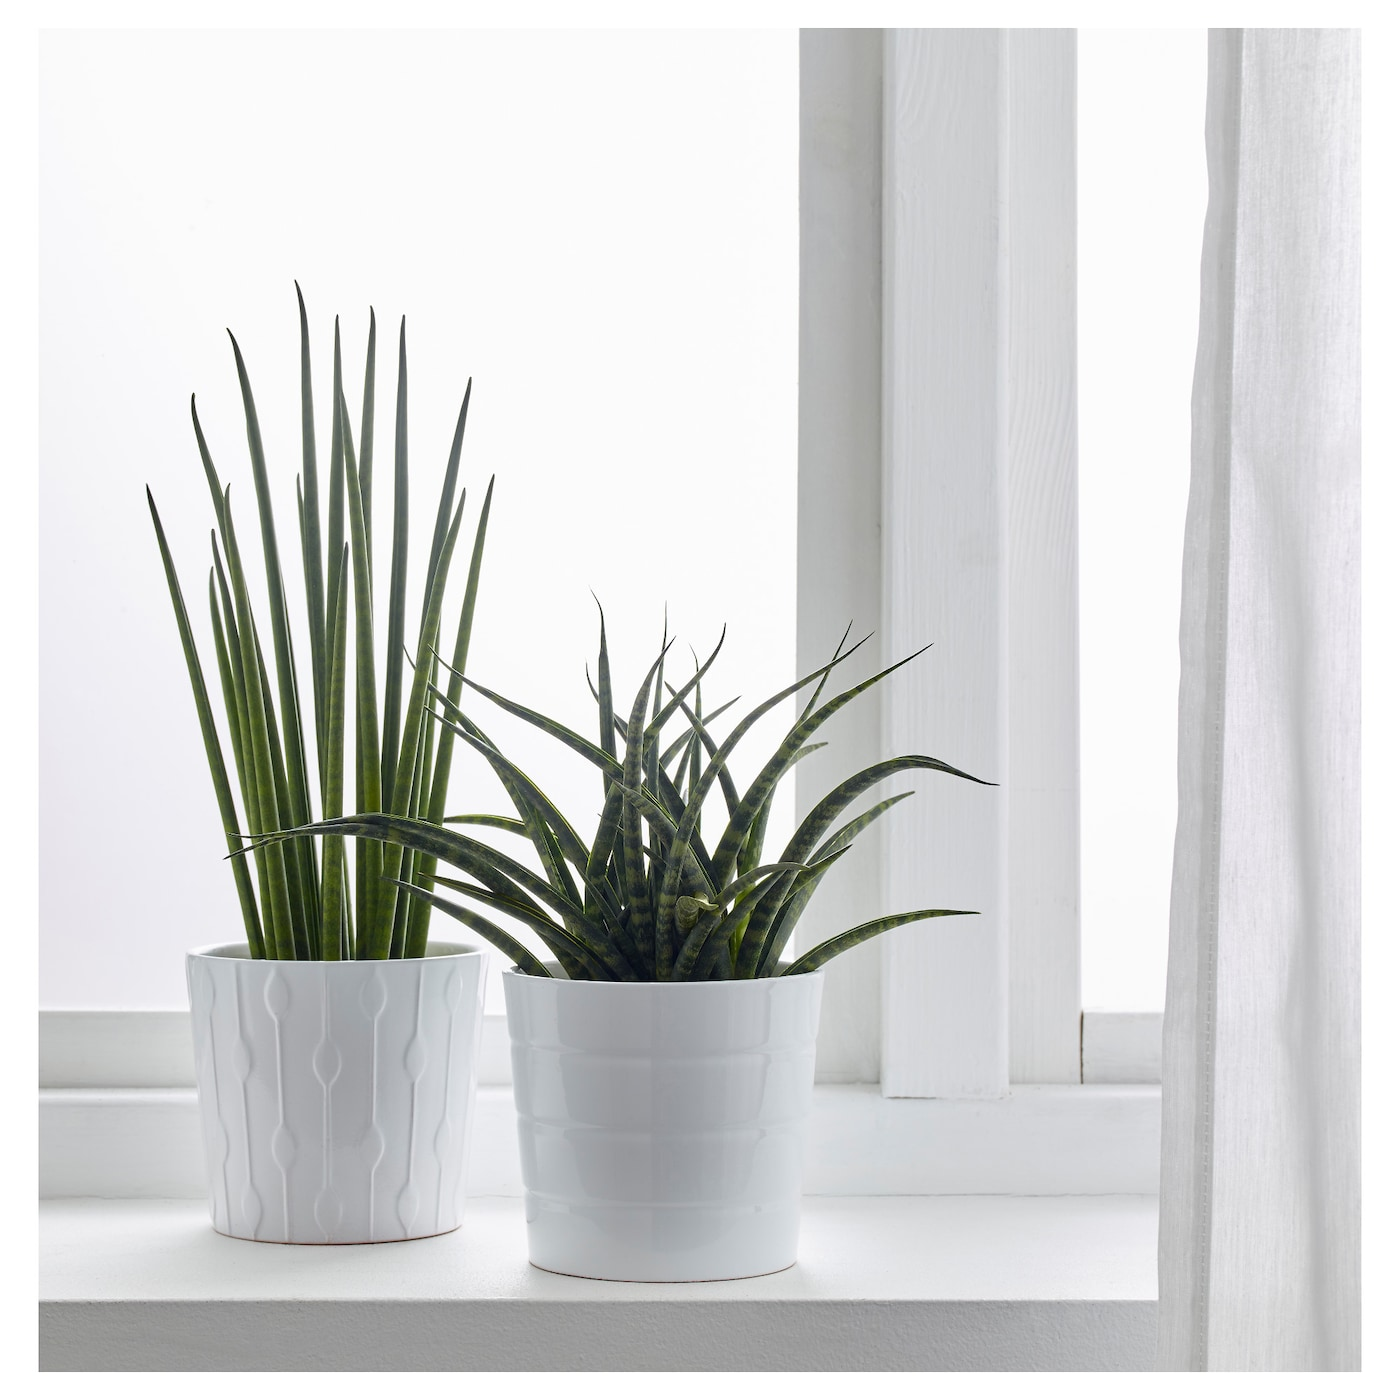 sansevieria plante en pot diverses esp ces 12 cm ikea. Black Bedroom Furniture Sets. Home Design Ideas